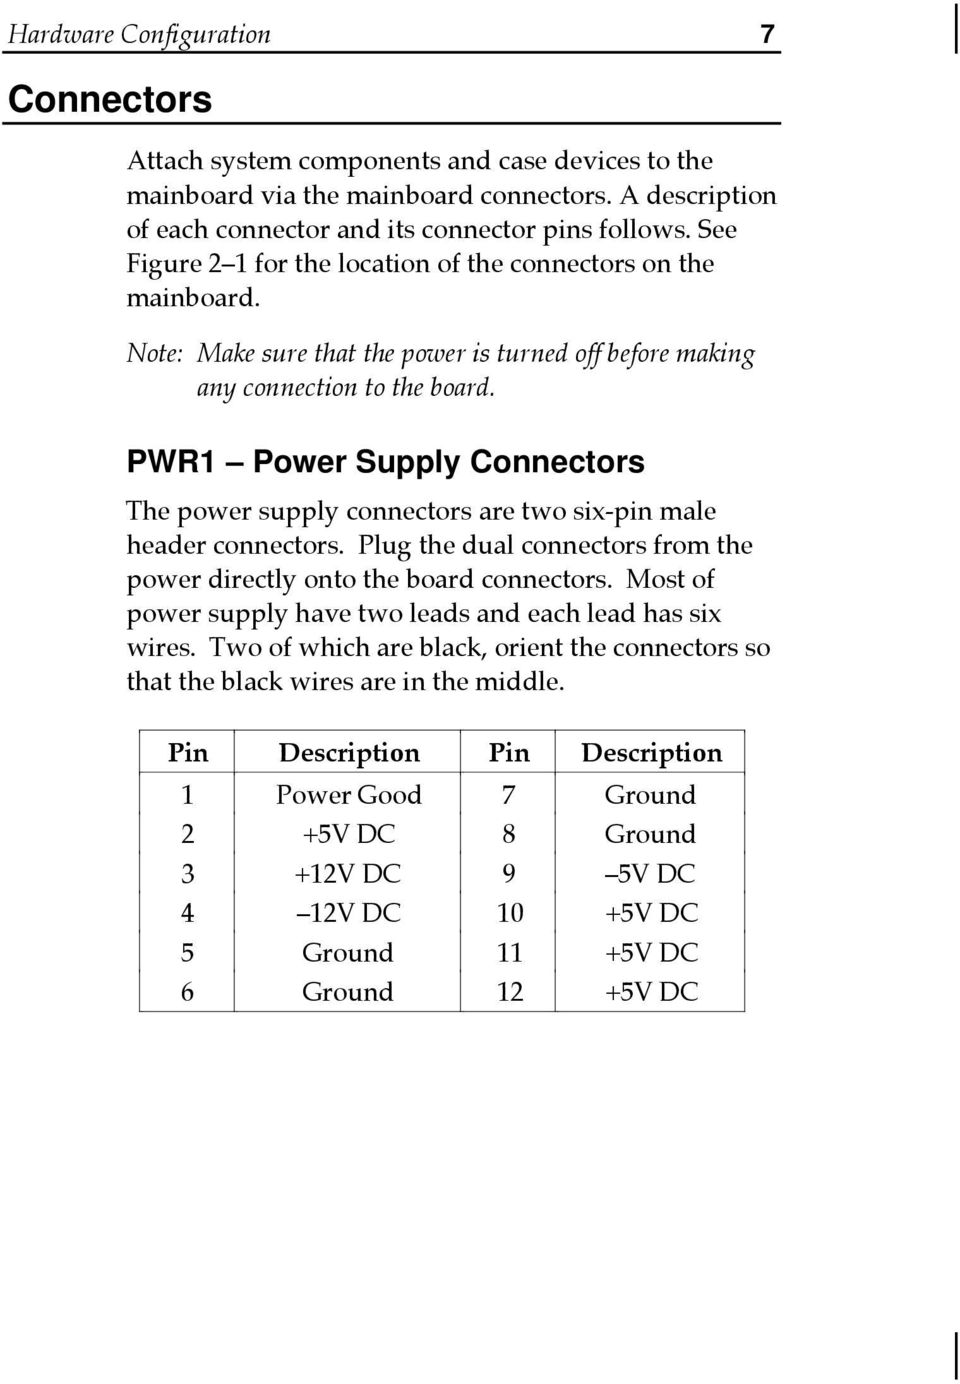 PWR Power Supply Connectors The power supply connectors are two six-pin male header connectors. Plug the dual connectors from the power directly onto the board connectors.